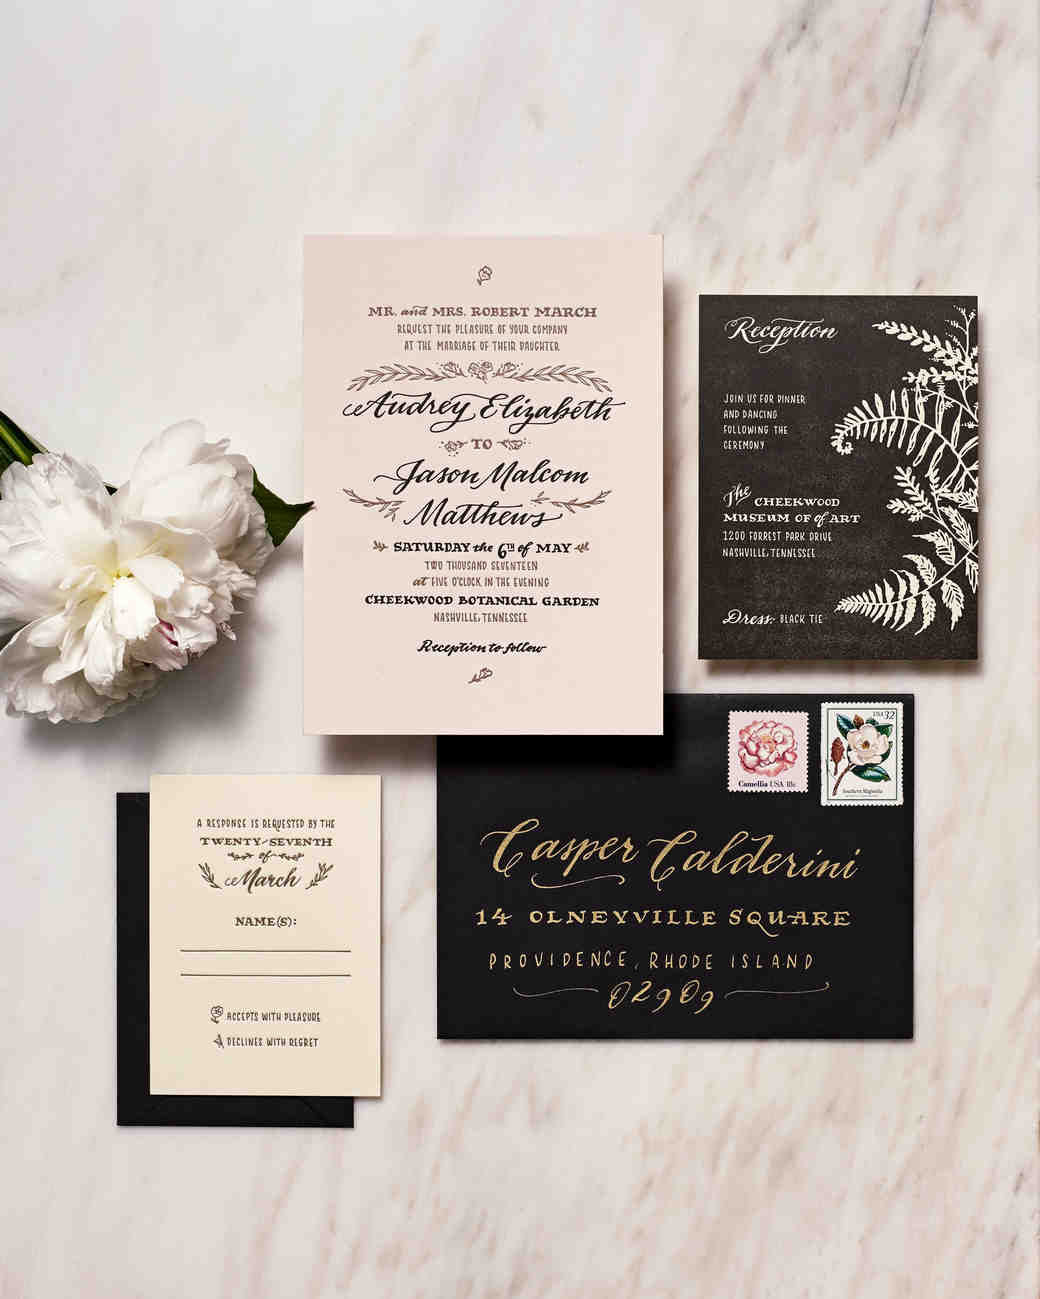 winter wedding invitations photo wedding invitations Get More Ideas for Decorating Your Wedding with Calligraphy